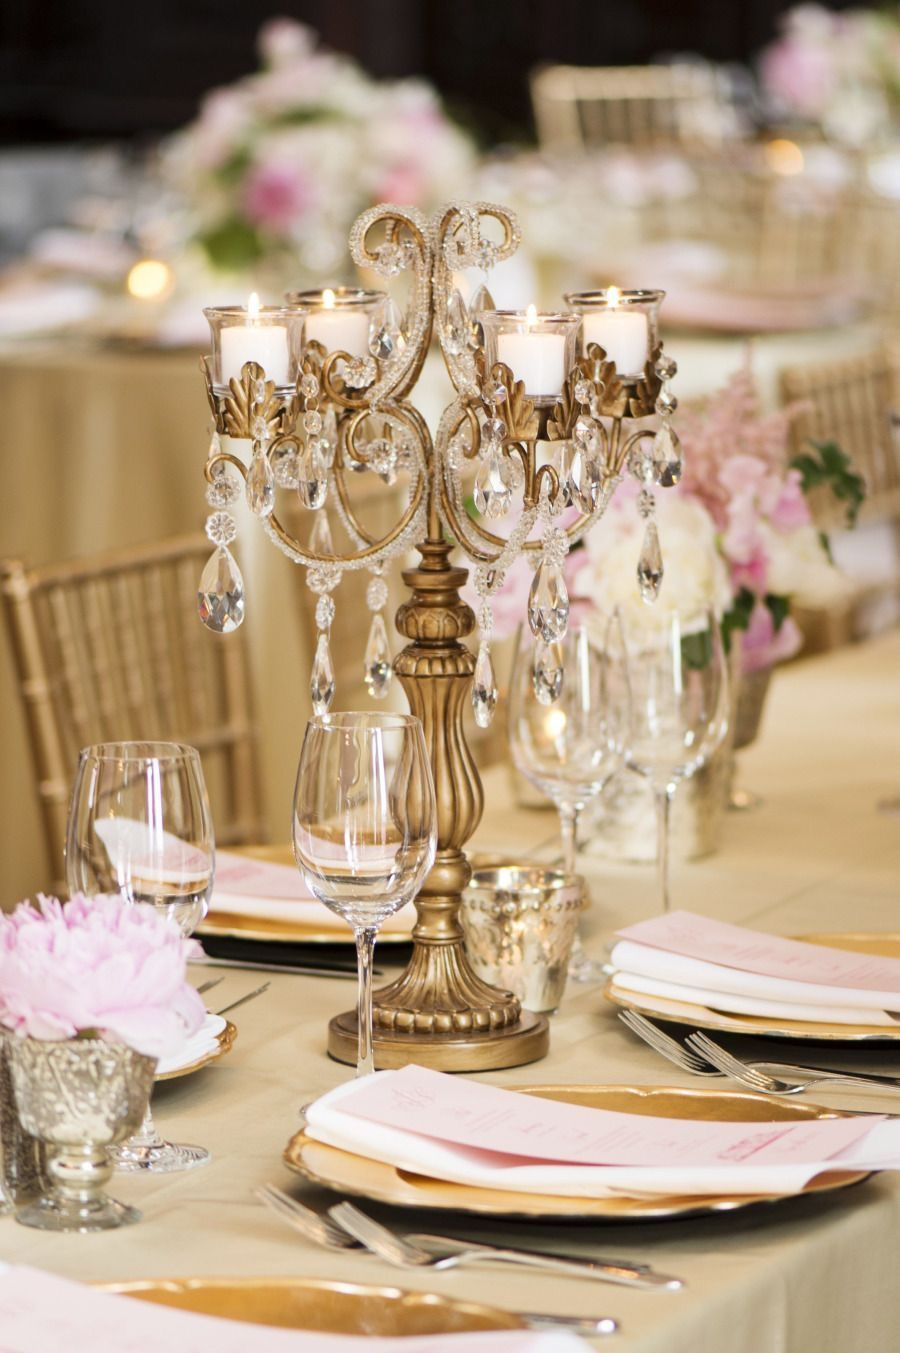 Parisian wedding caviar affairs pinterest parisian wedding from cake to centerpieces escort cards to chair decors get tons of inspiration for gold wedding reception idease post classy elegant and glamorous arubaitofo Image collections